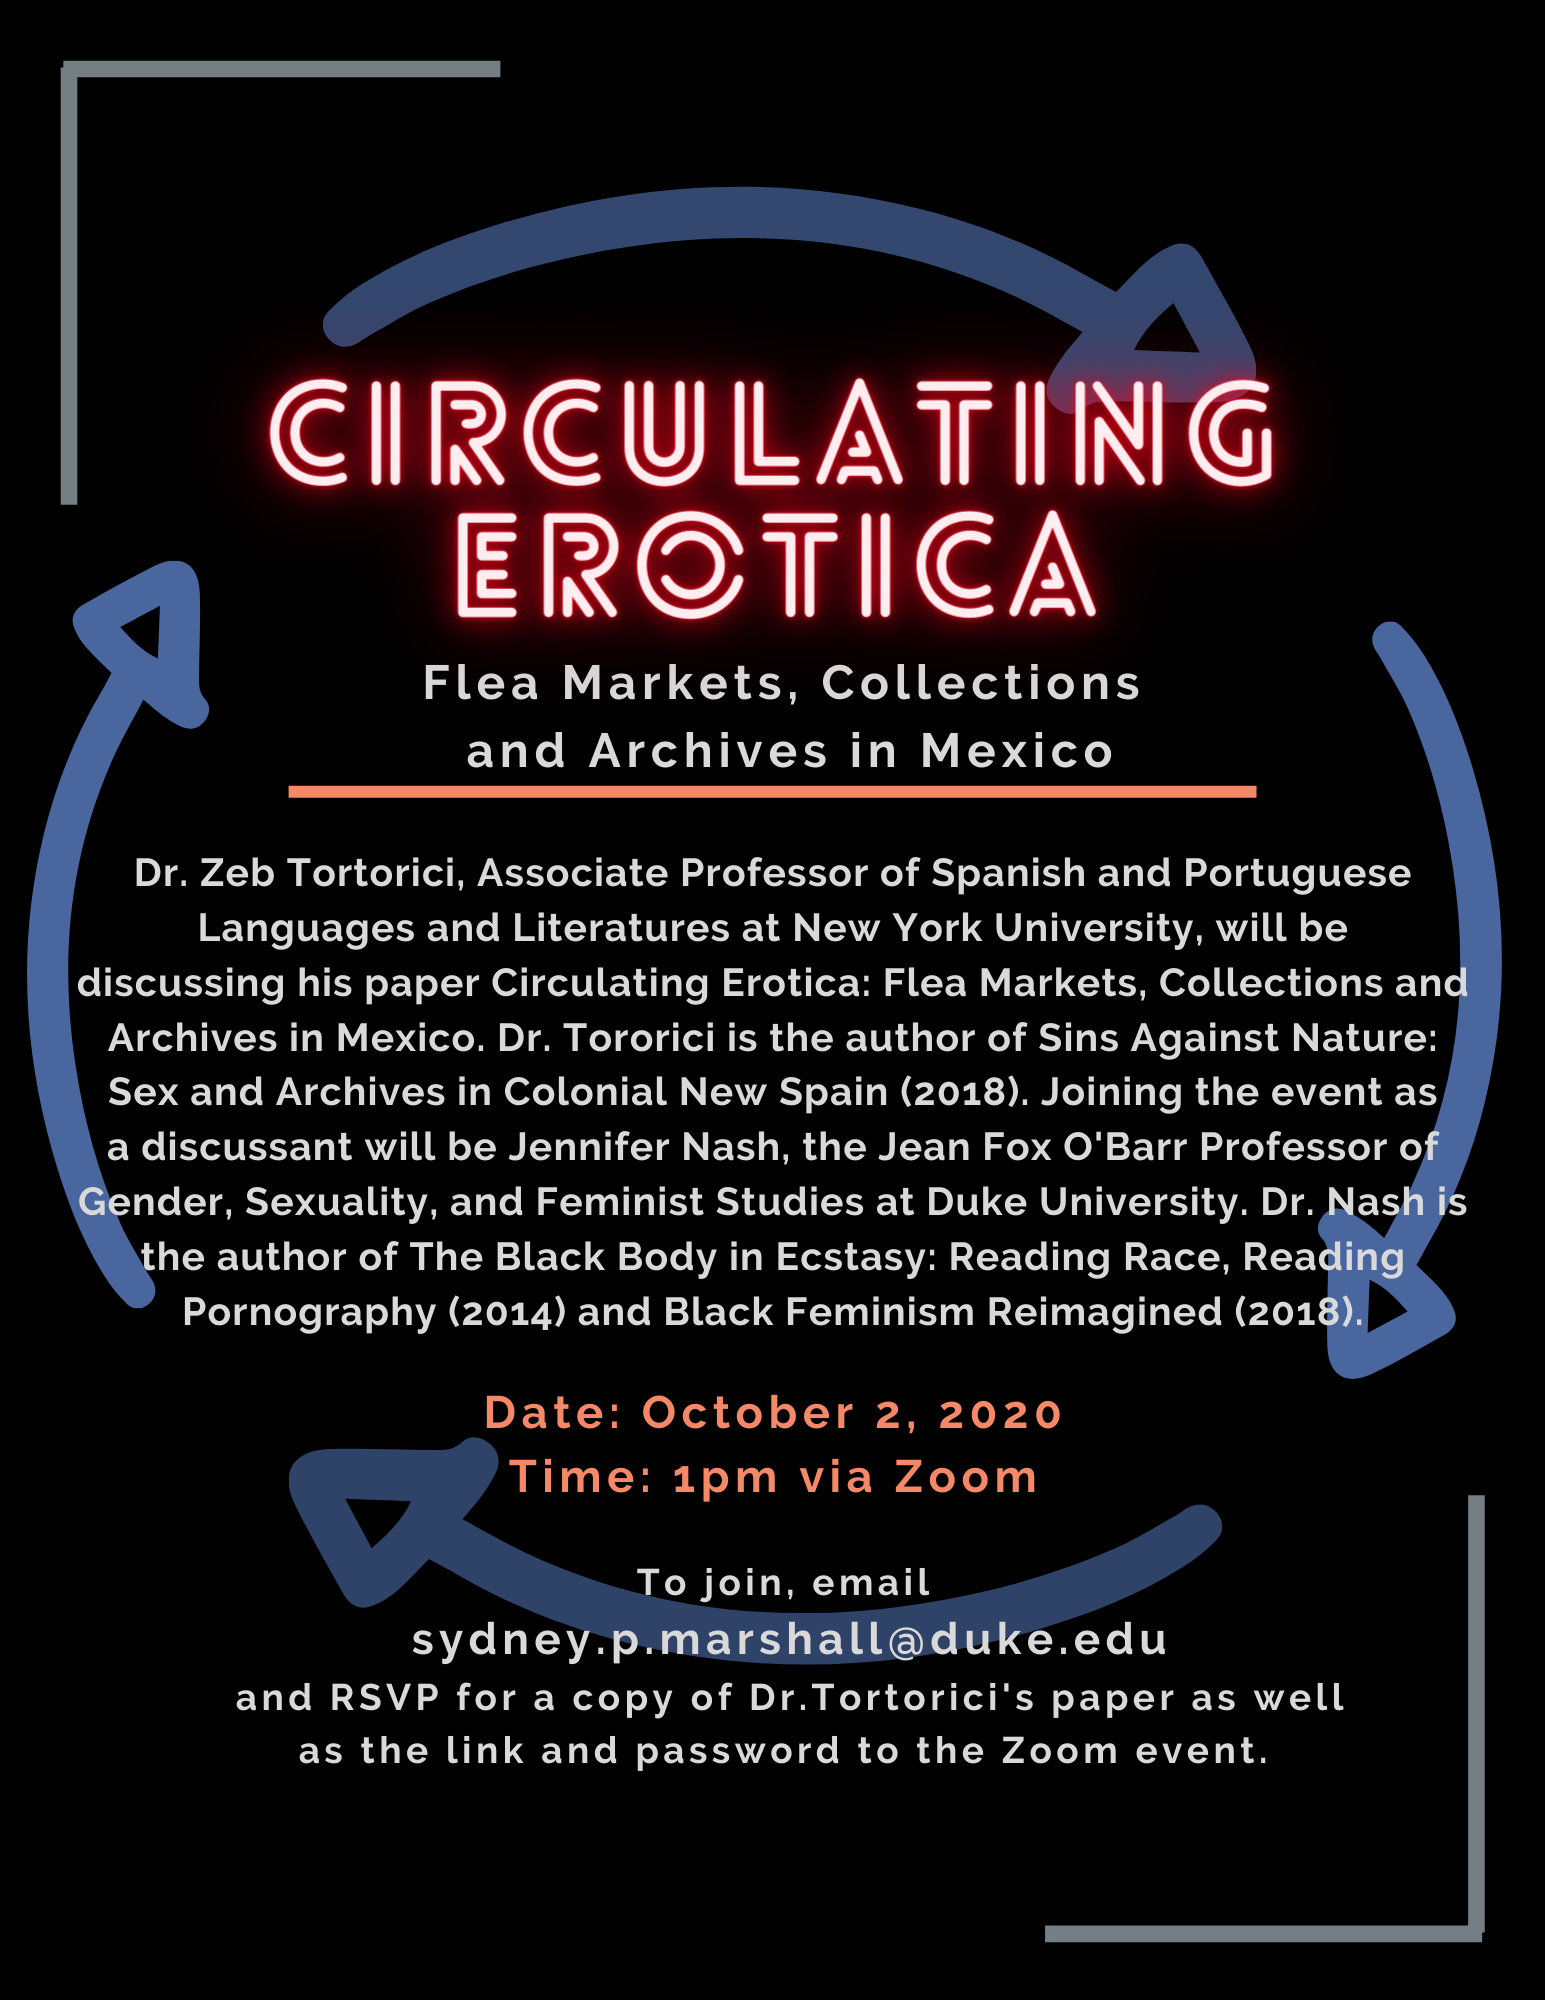 Circulating Erotica: Flea Markets, Collections and Archives in Mexico